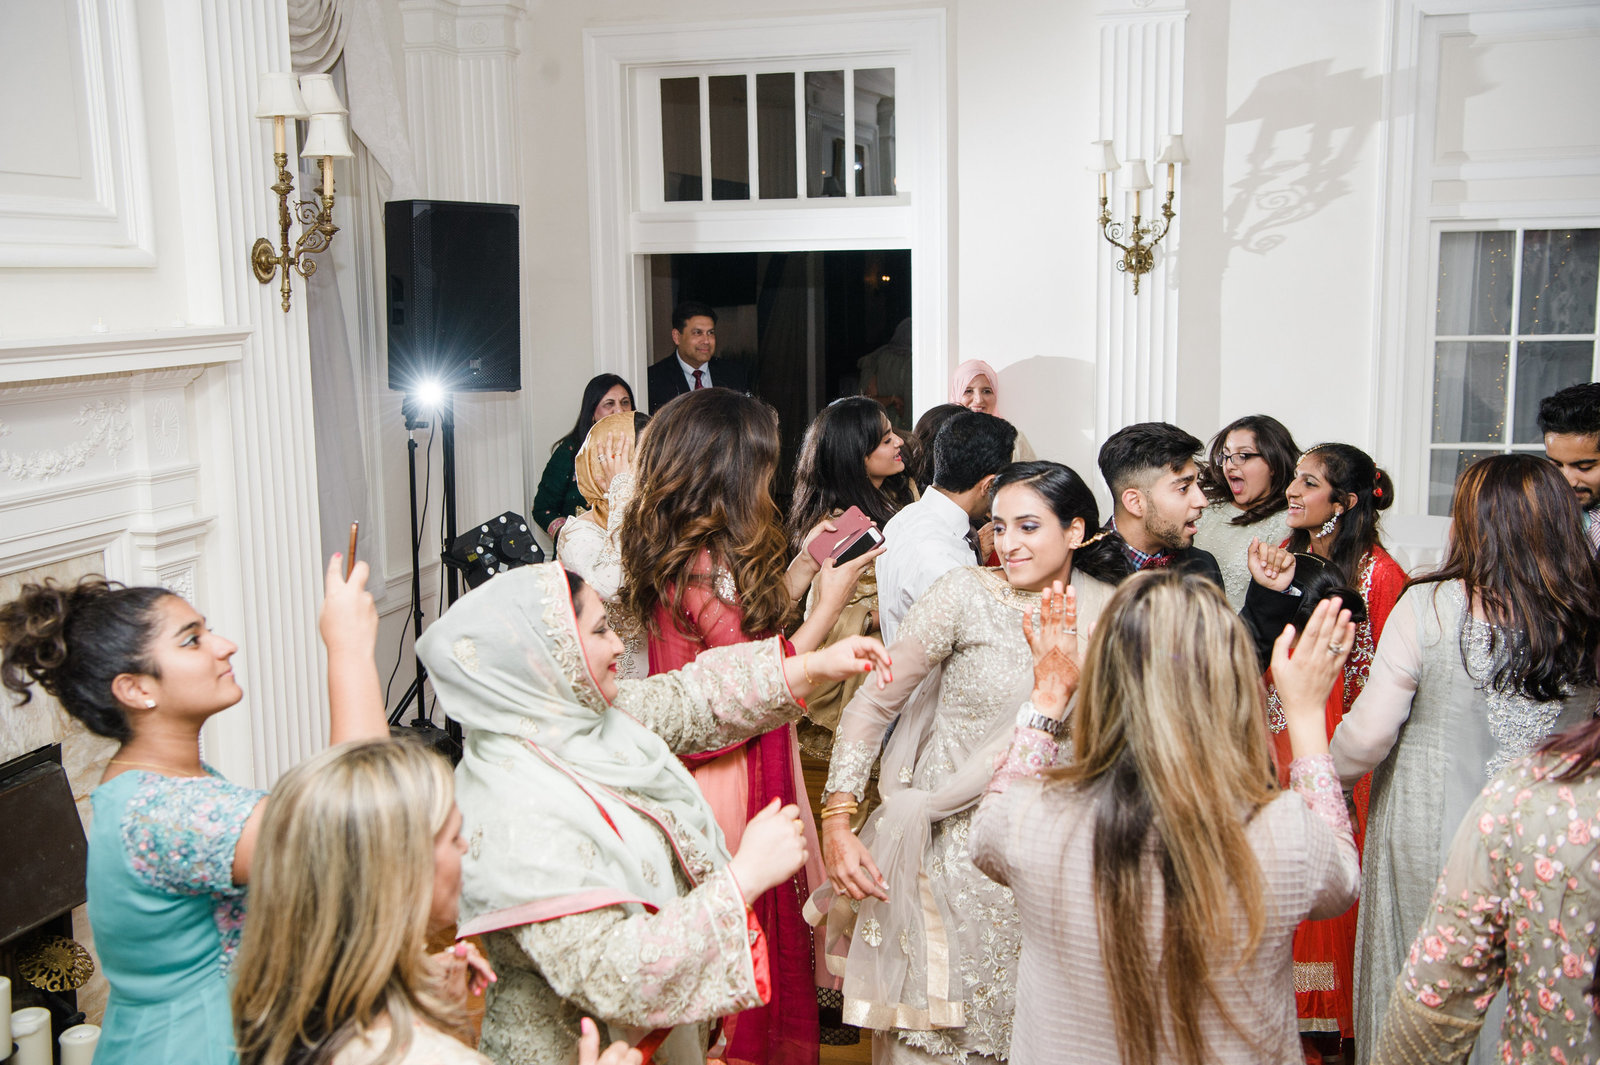 Minhas-Sohail Wedding by The Hill Studios-573